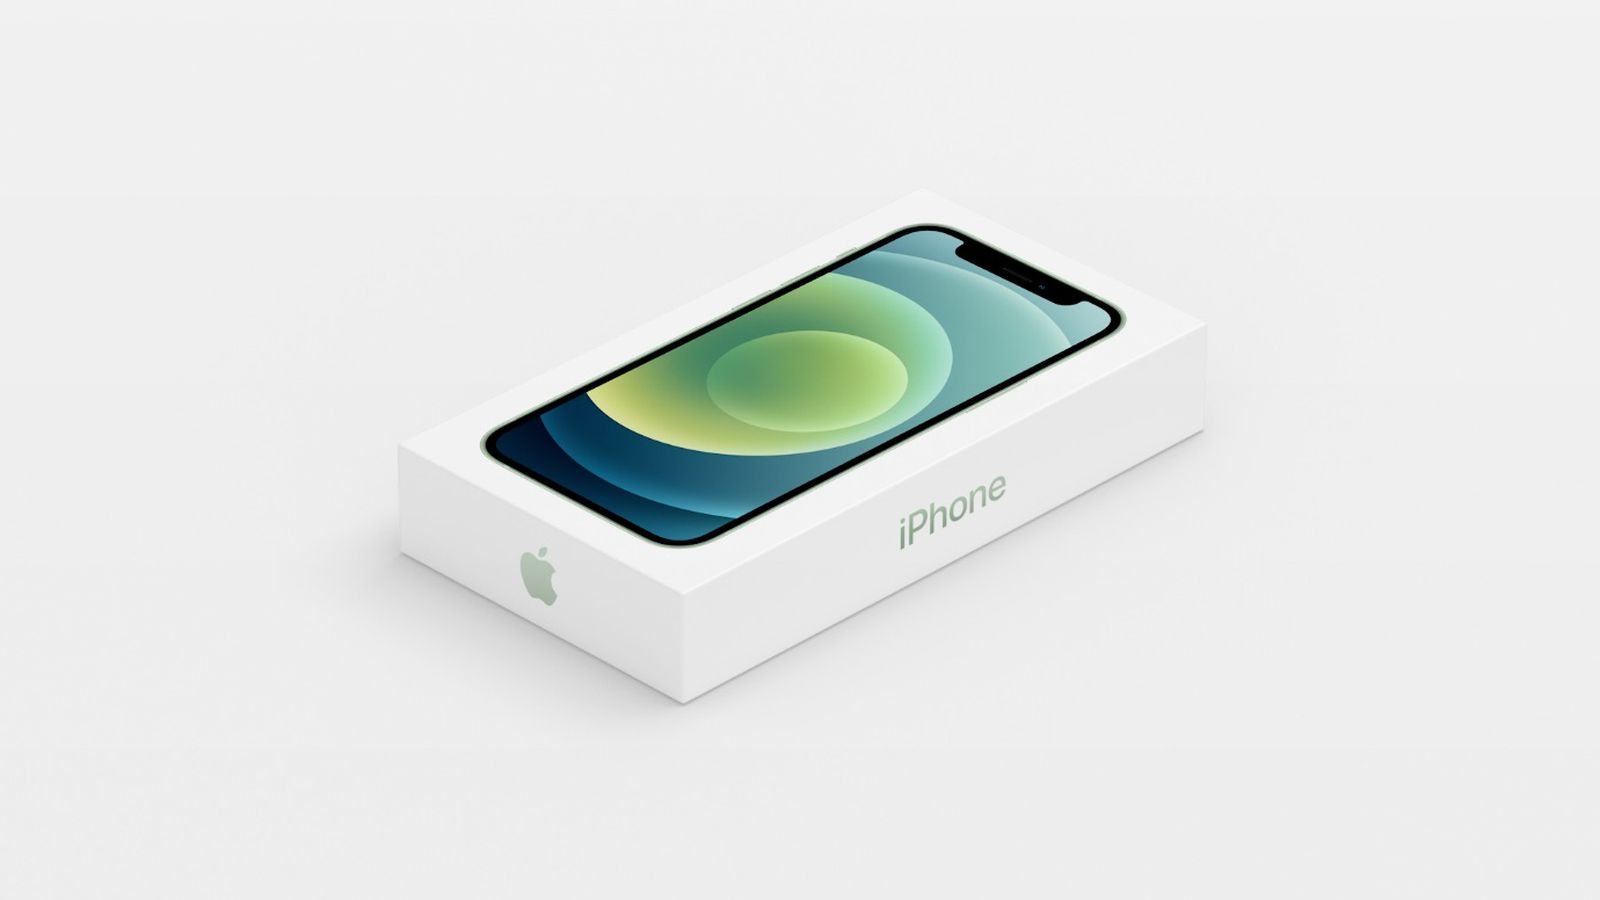 Iphone 12 Models Ship In Thinner Box Without Earpods Or Charger Macrumors